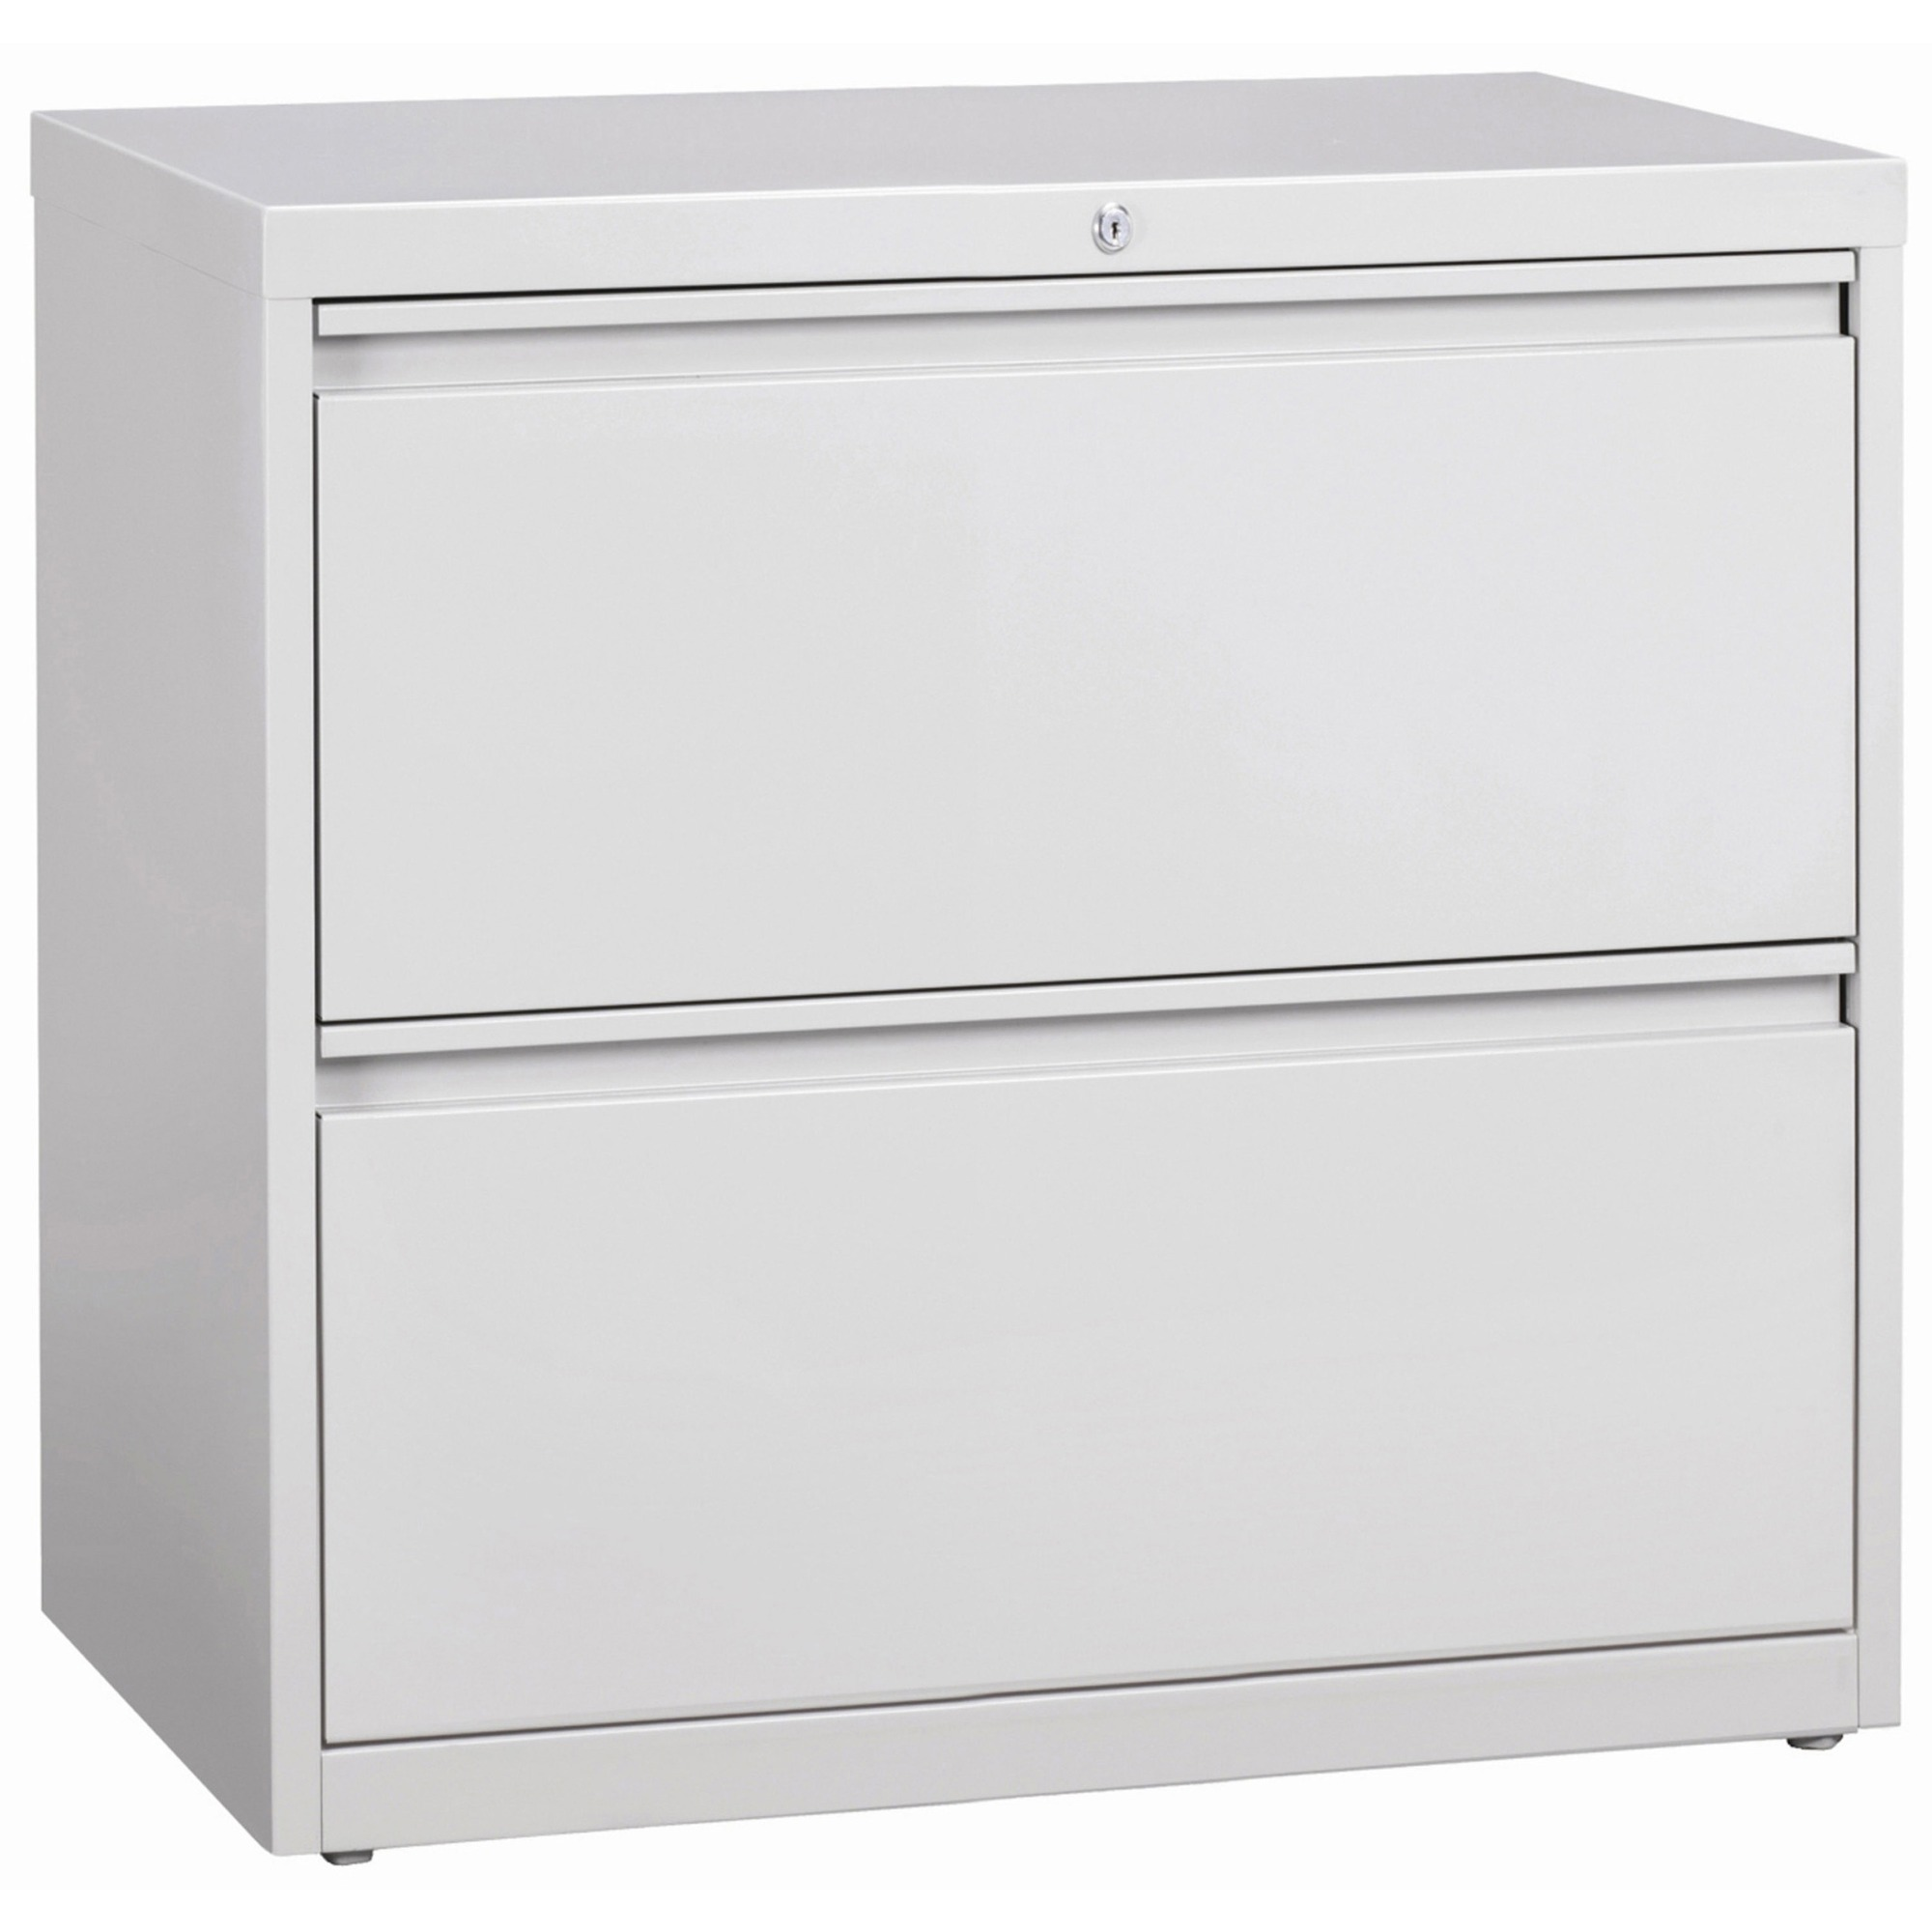 Lorell Lateral File Cabinet Selkirk Cellulars Office Supplies Corp Furniture Filing